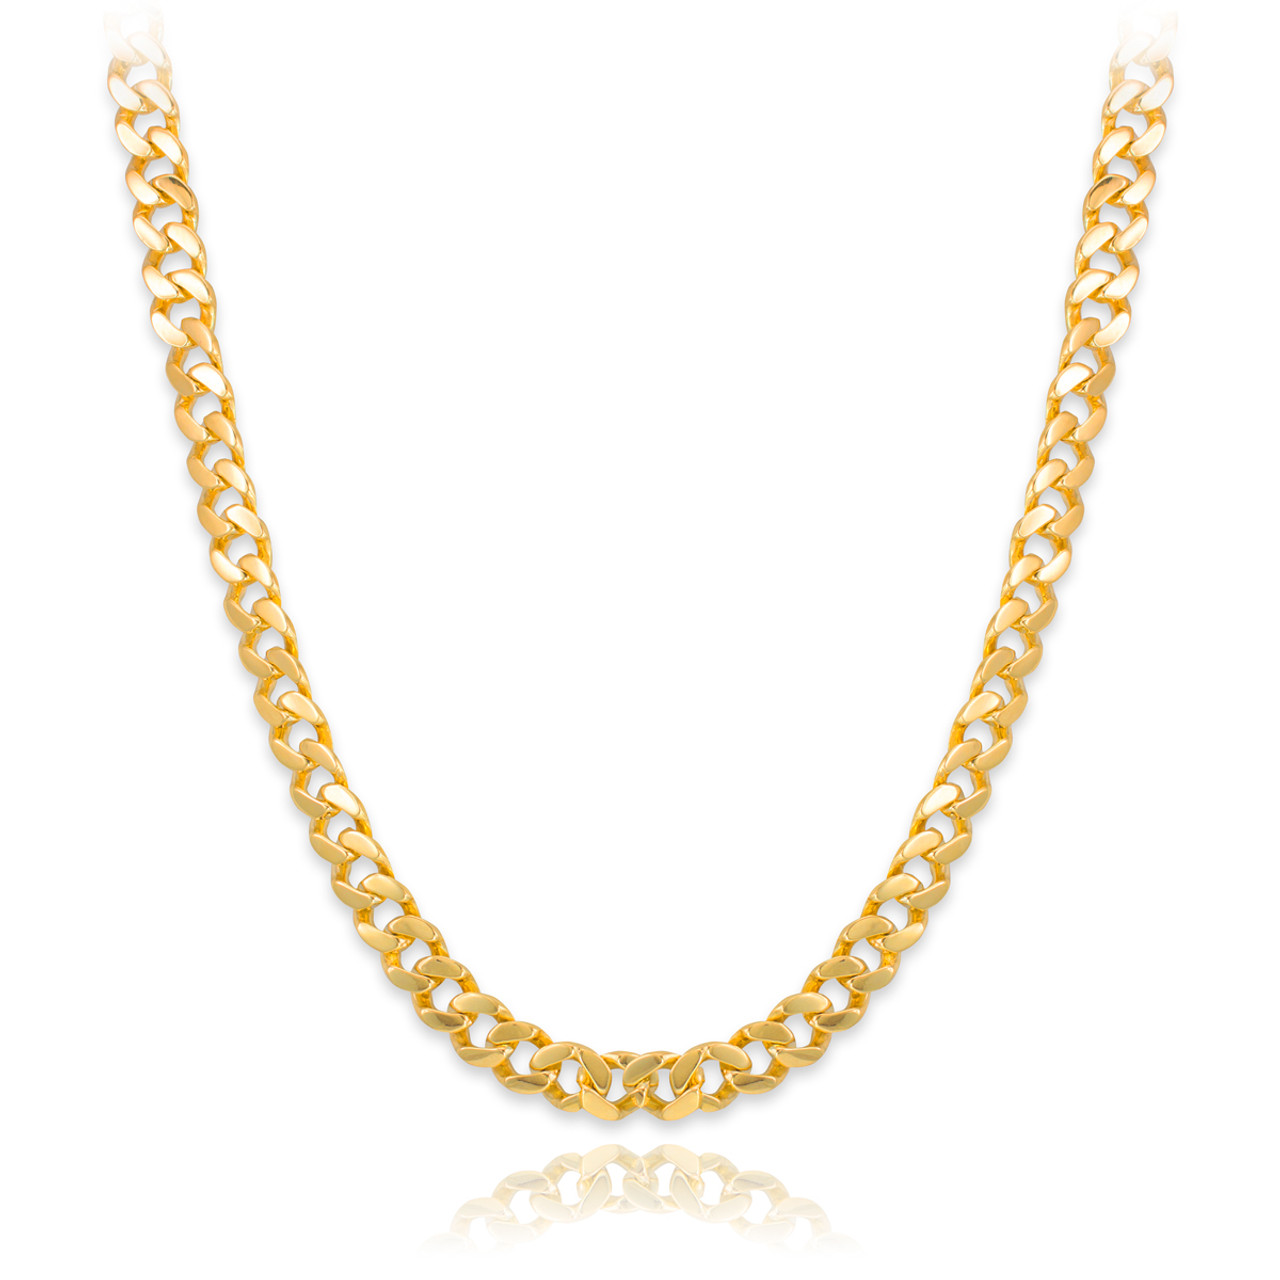 ae660df642e Solid Gold Men s Cuban Link Chain 10mm